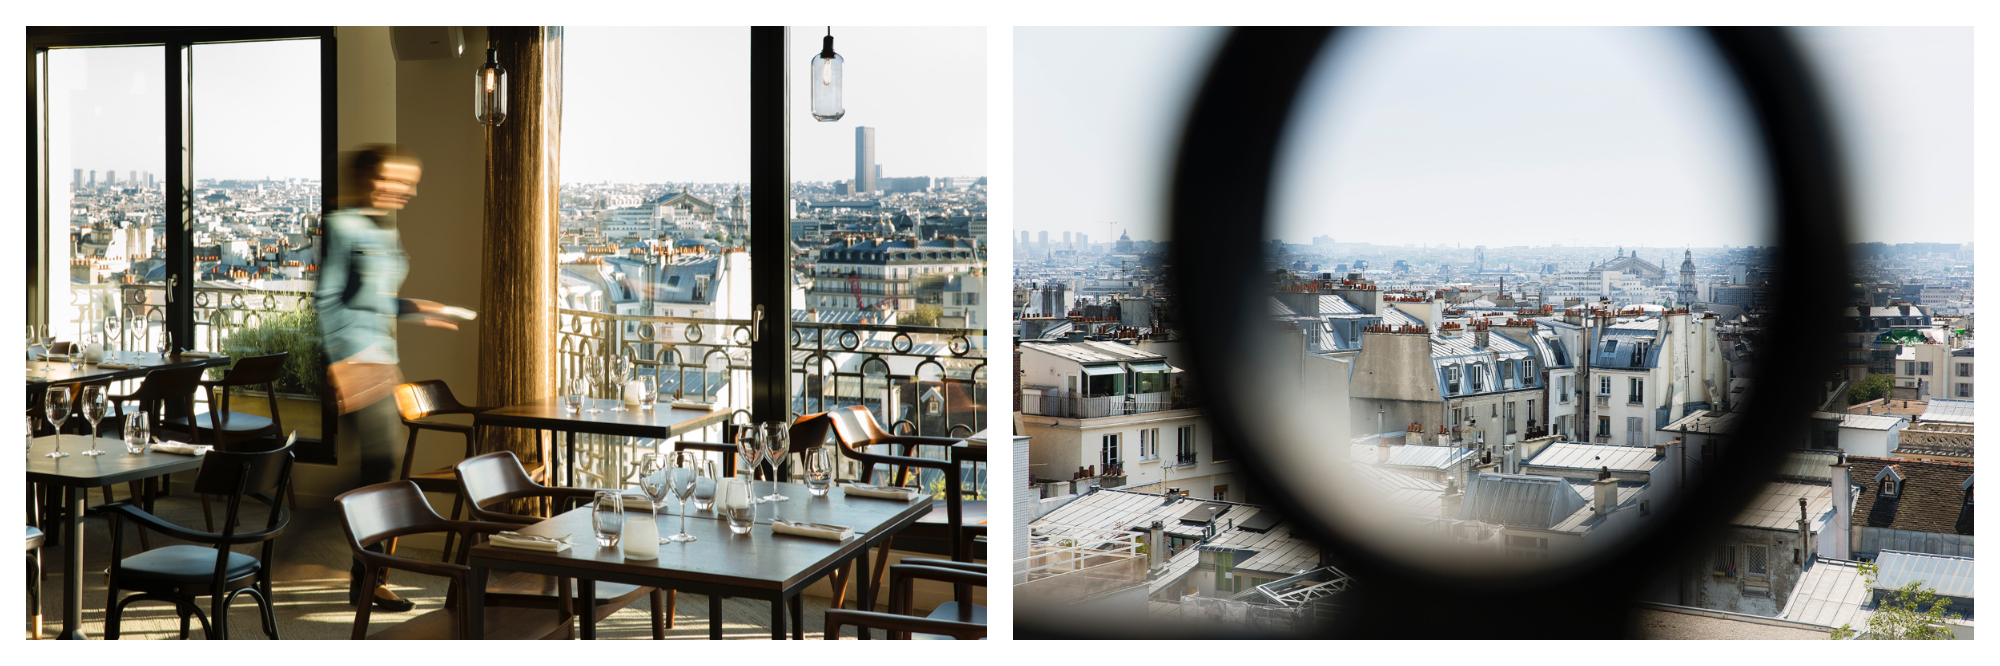 The interior of a restaurant with the blurred figure of a waiter. A view of Paris outside the windows (left). A view of Paris through a wrought iron balcony (right).